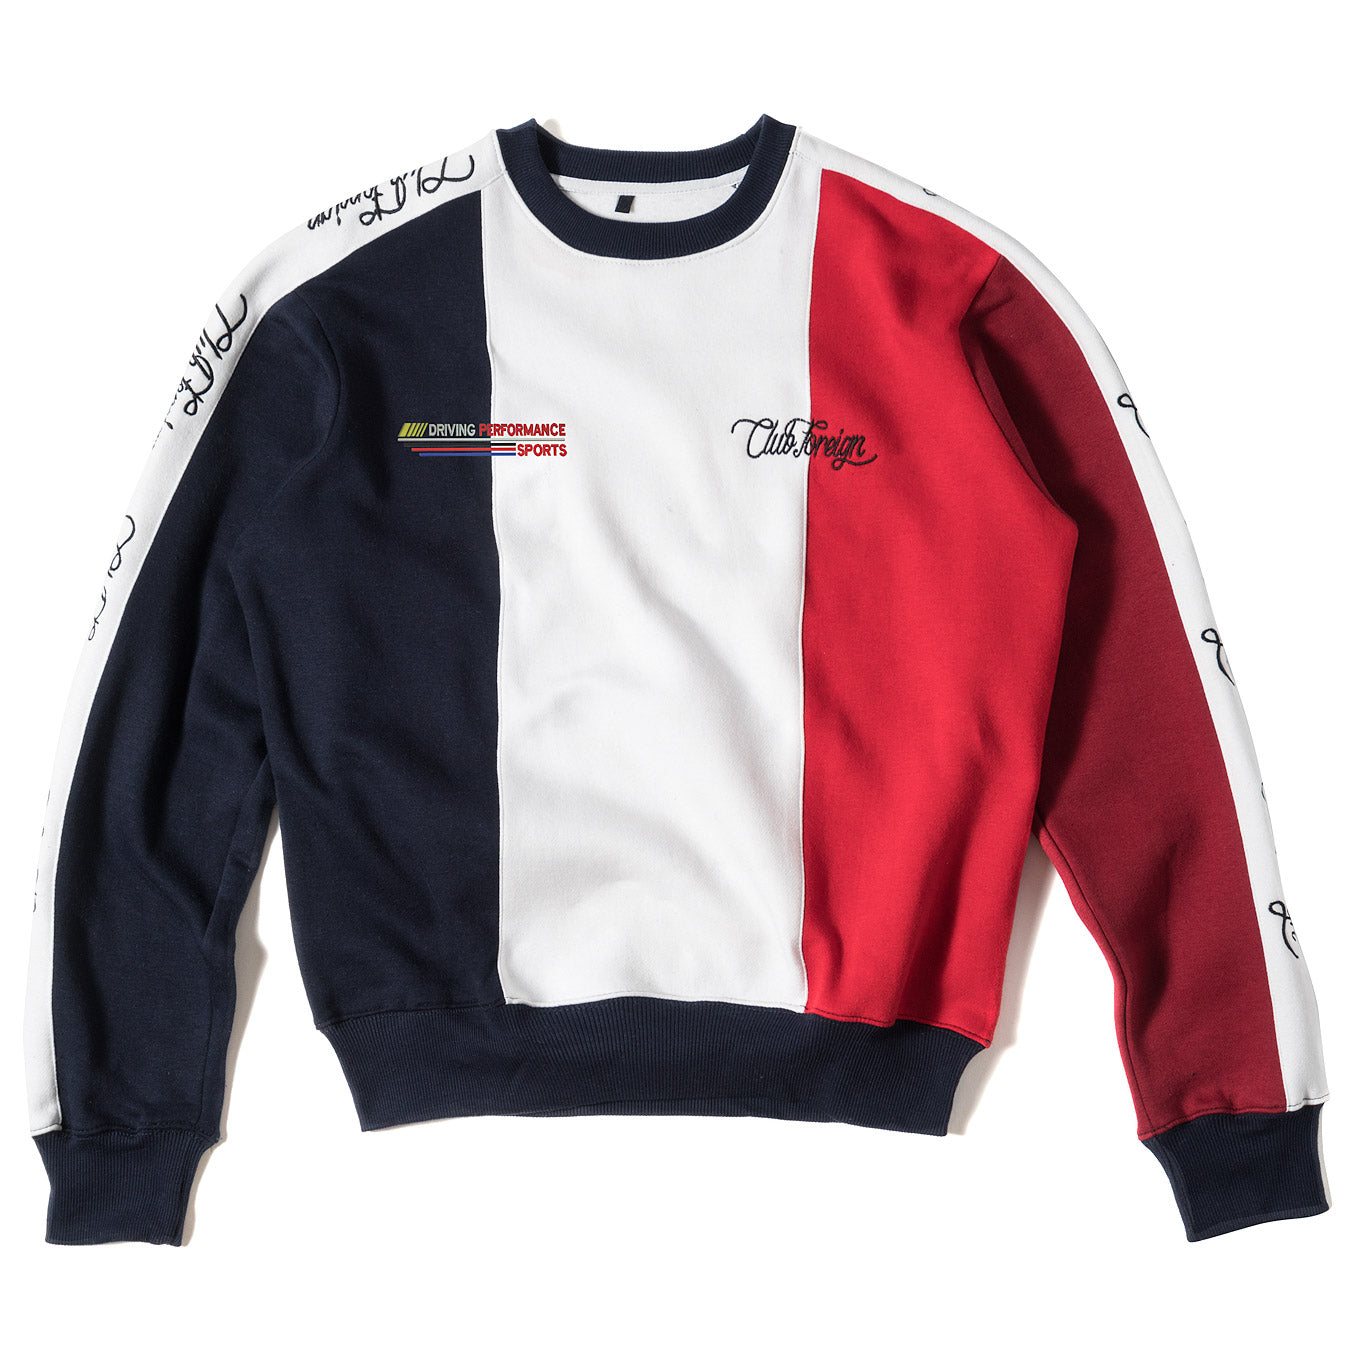 ClubForeign Performance Men's Crewneck Sweatshirt Blue White Red - Trends Society